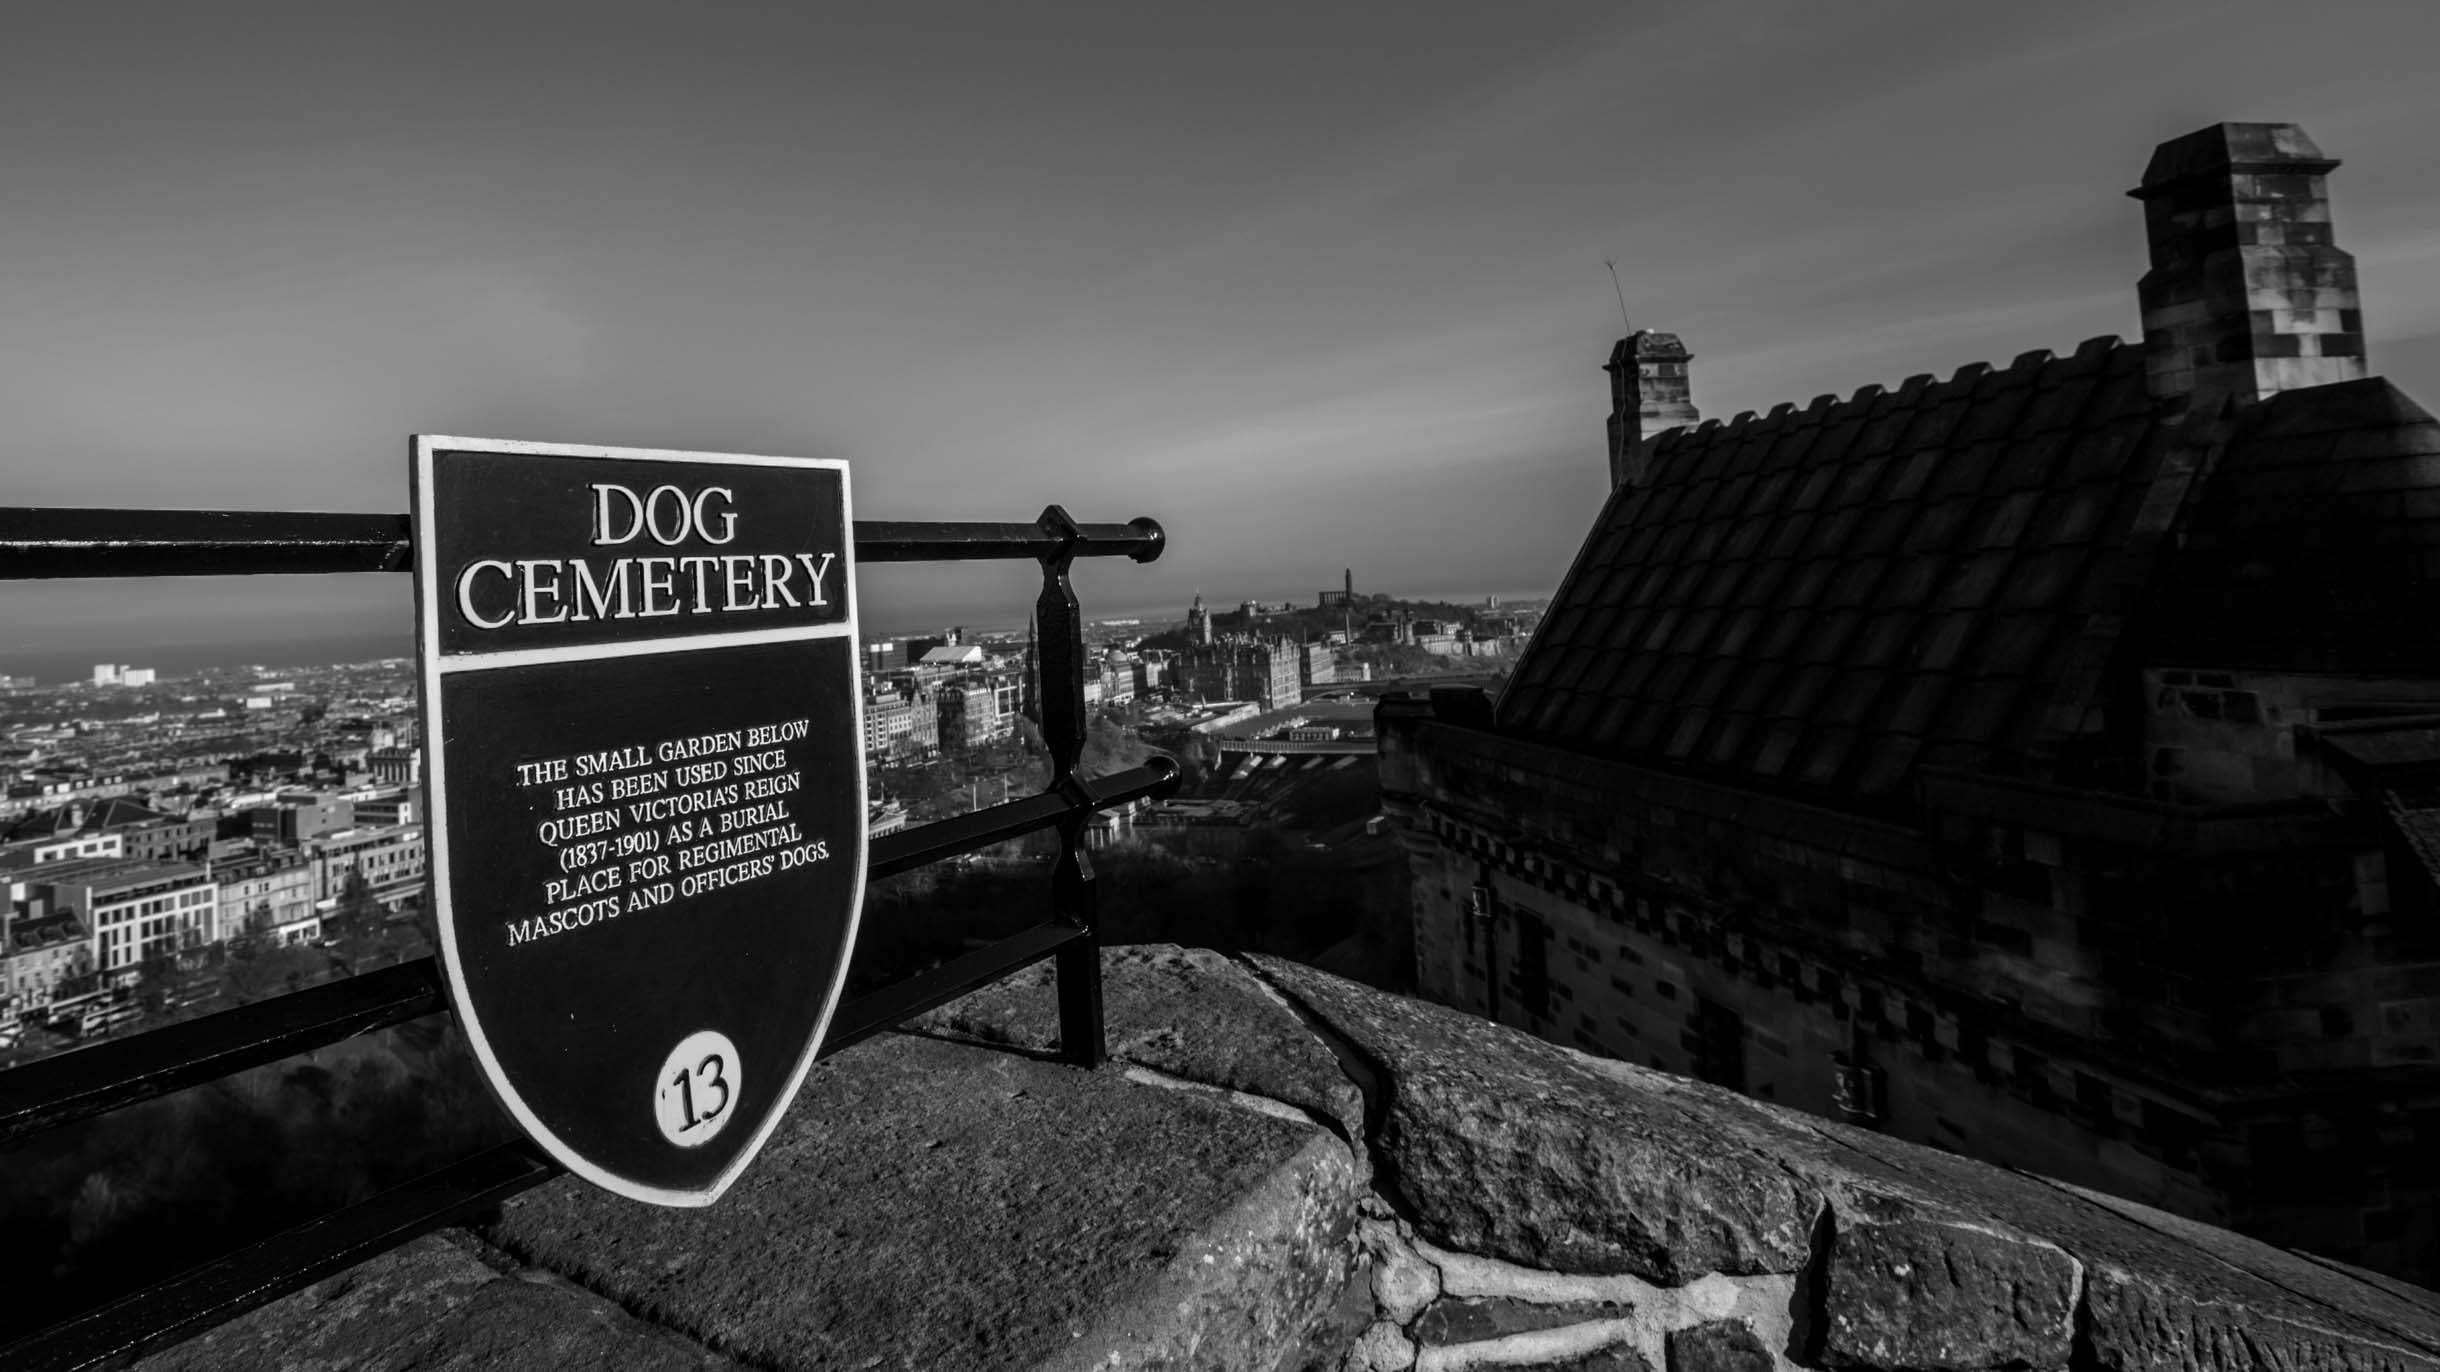 Picture Taken While Exploring Edinburgh - dog cemetery edinburgh castle